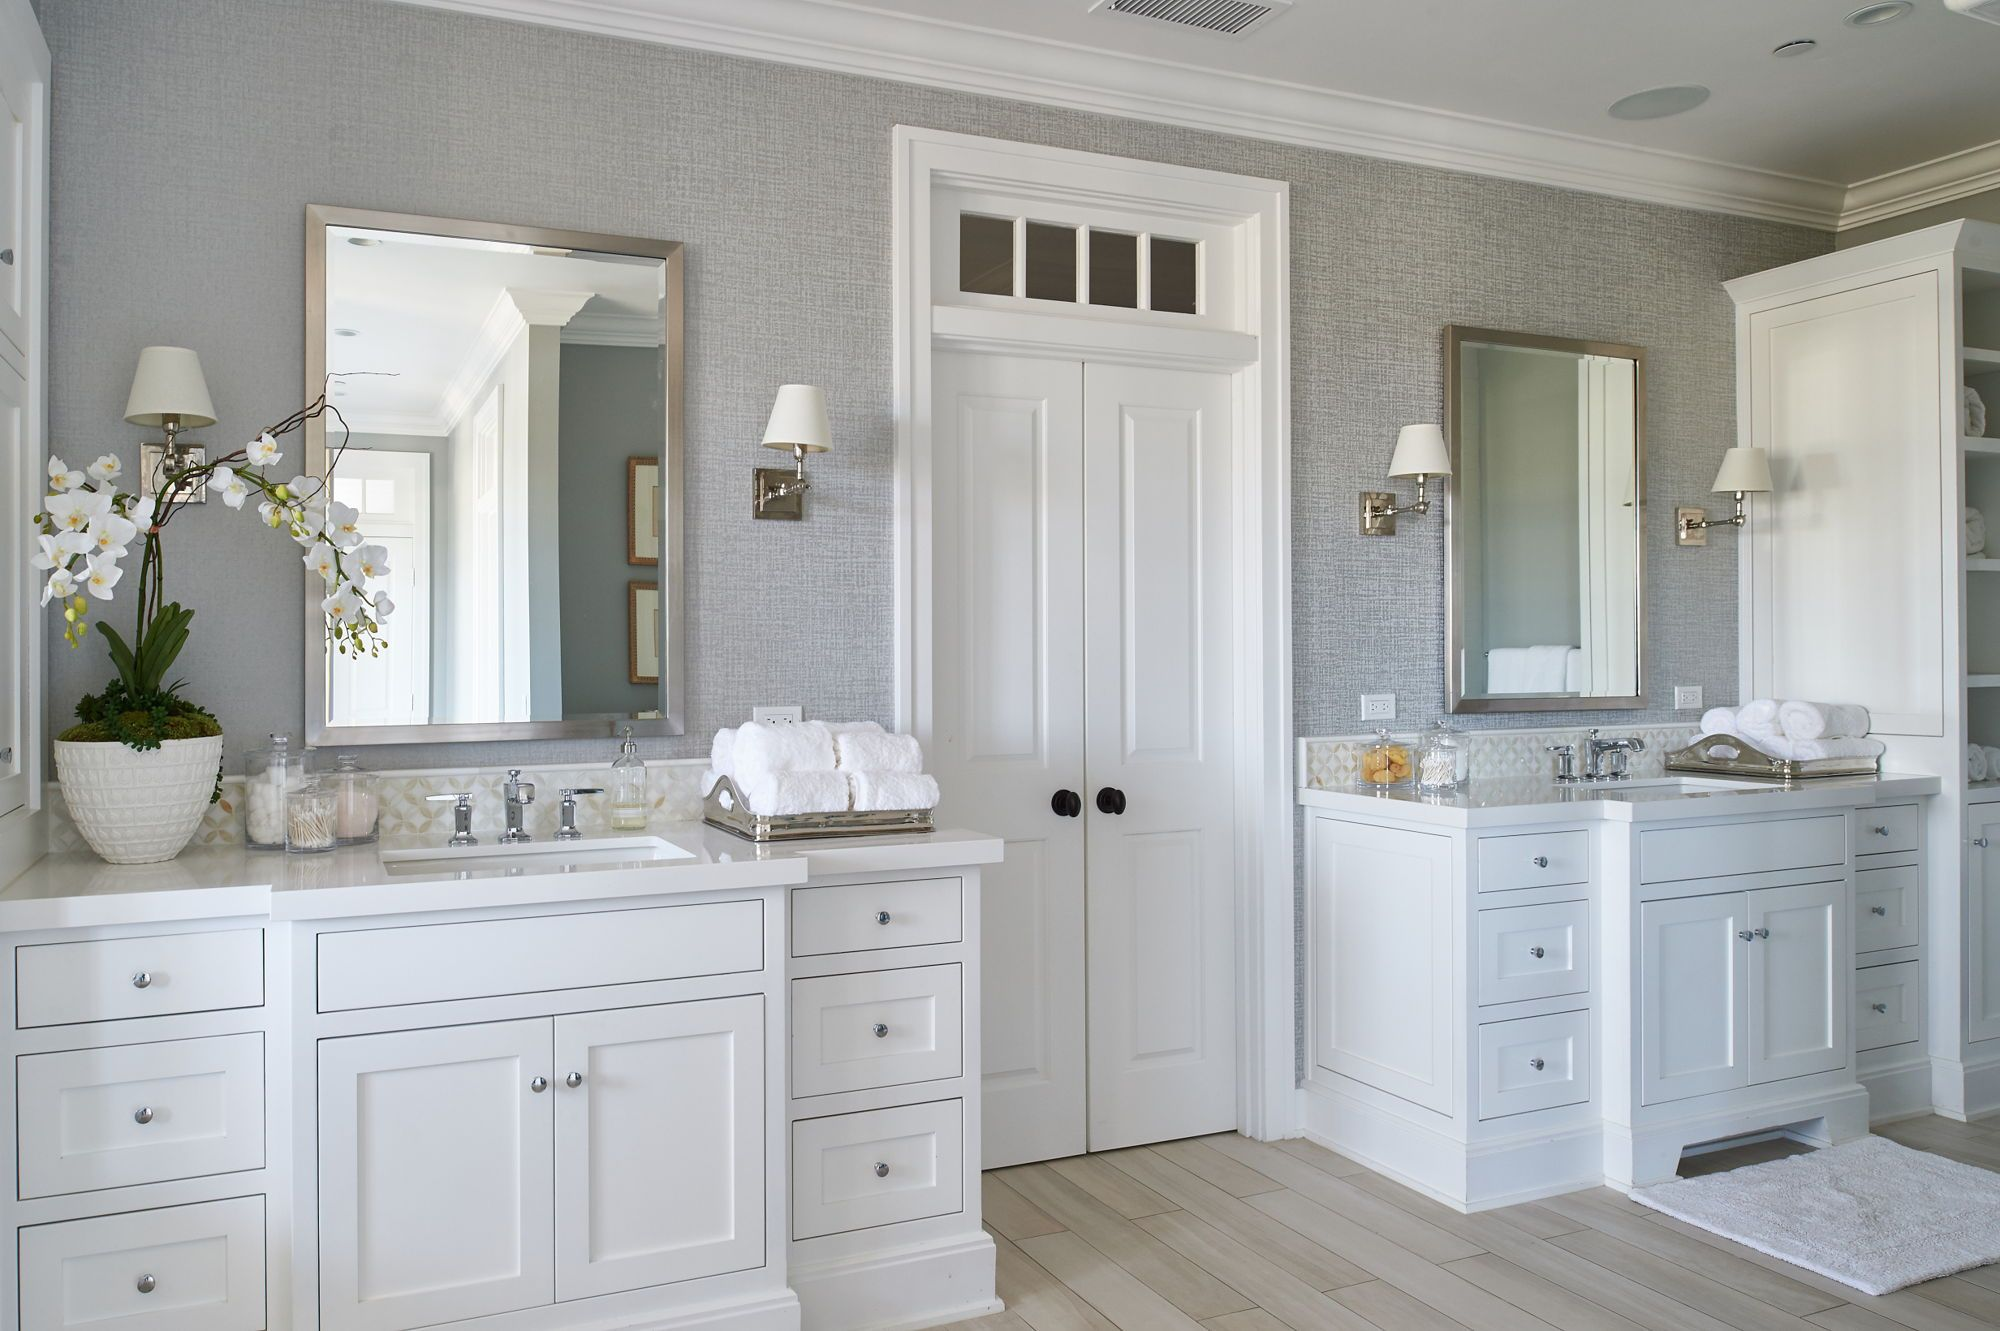 His And Her Vanities In A Large Master Bathroom White Vanities With Chrome Fixtures A Bathroom Remodel Master Farmhouse Master Bathroom Master Bathroom Design